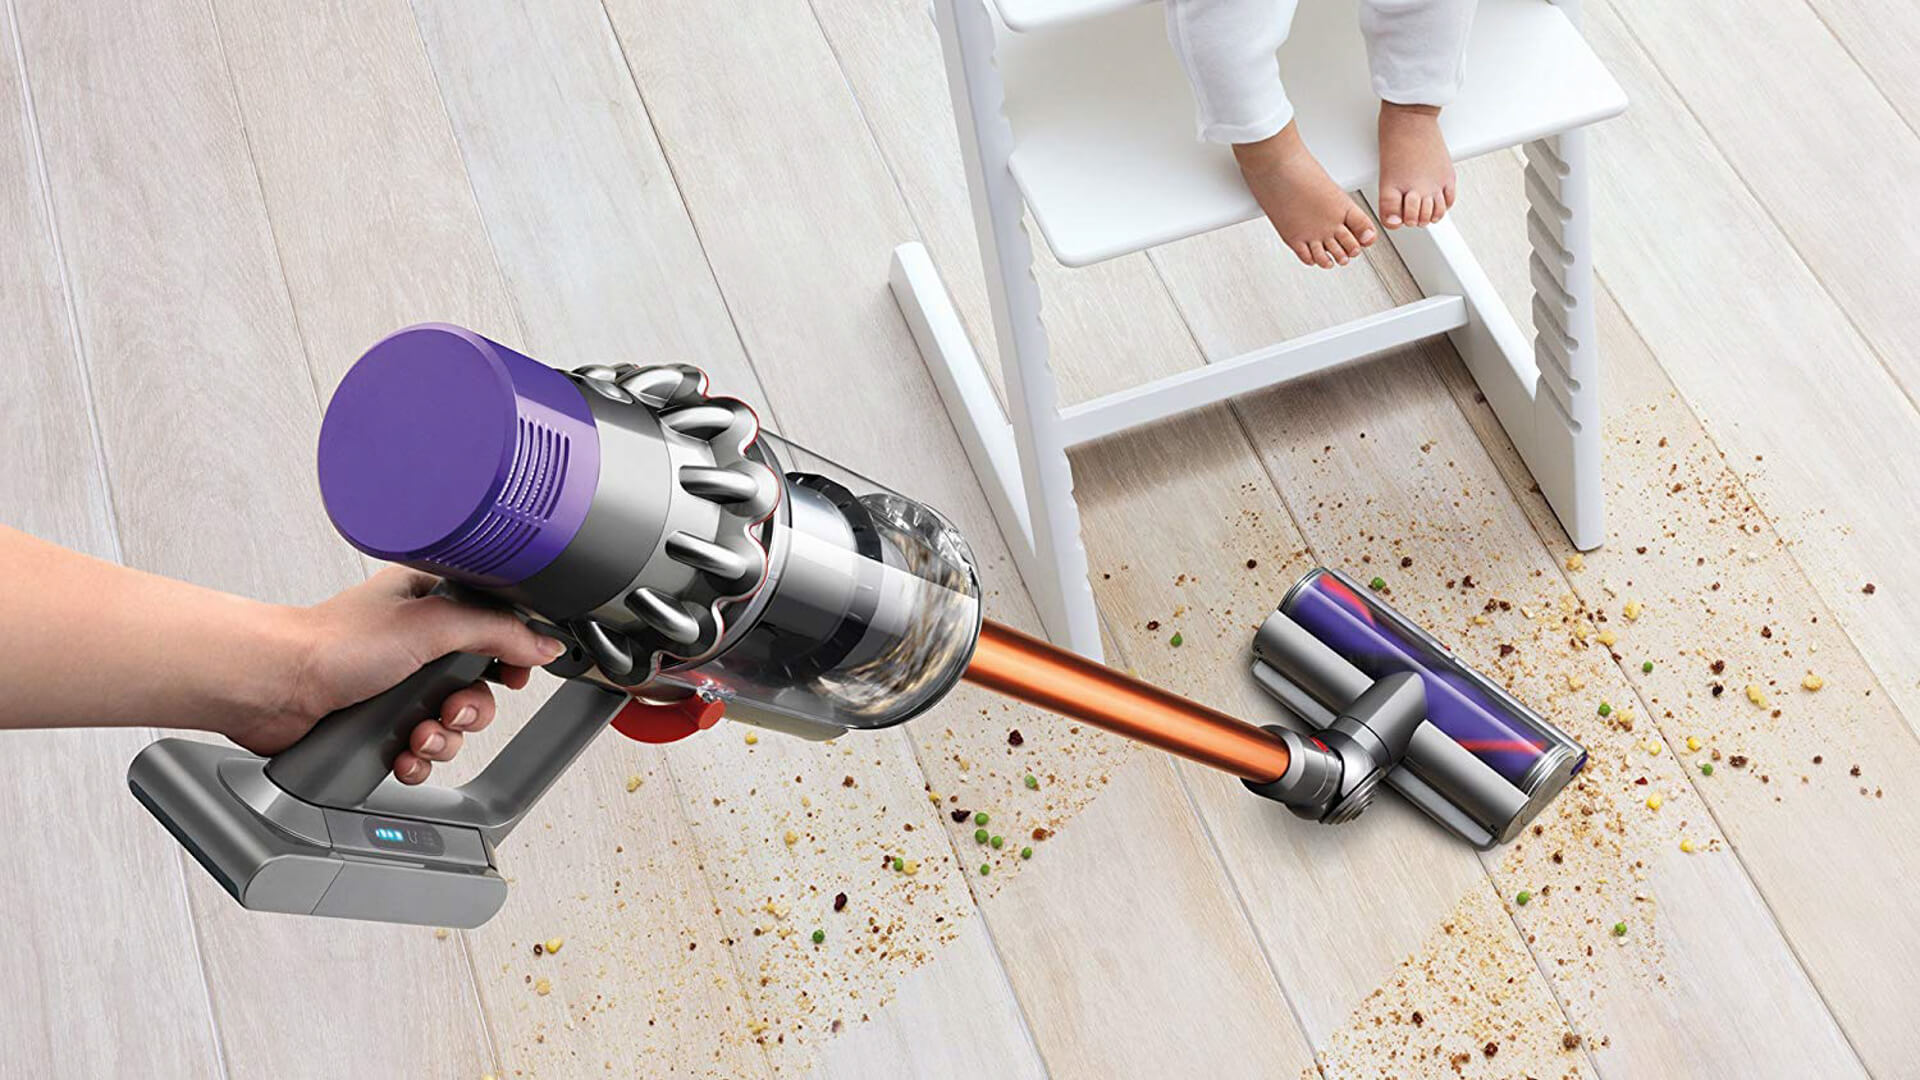 30 Cool Gadgets That'll Make Spring Cleaning a Breeze